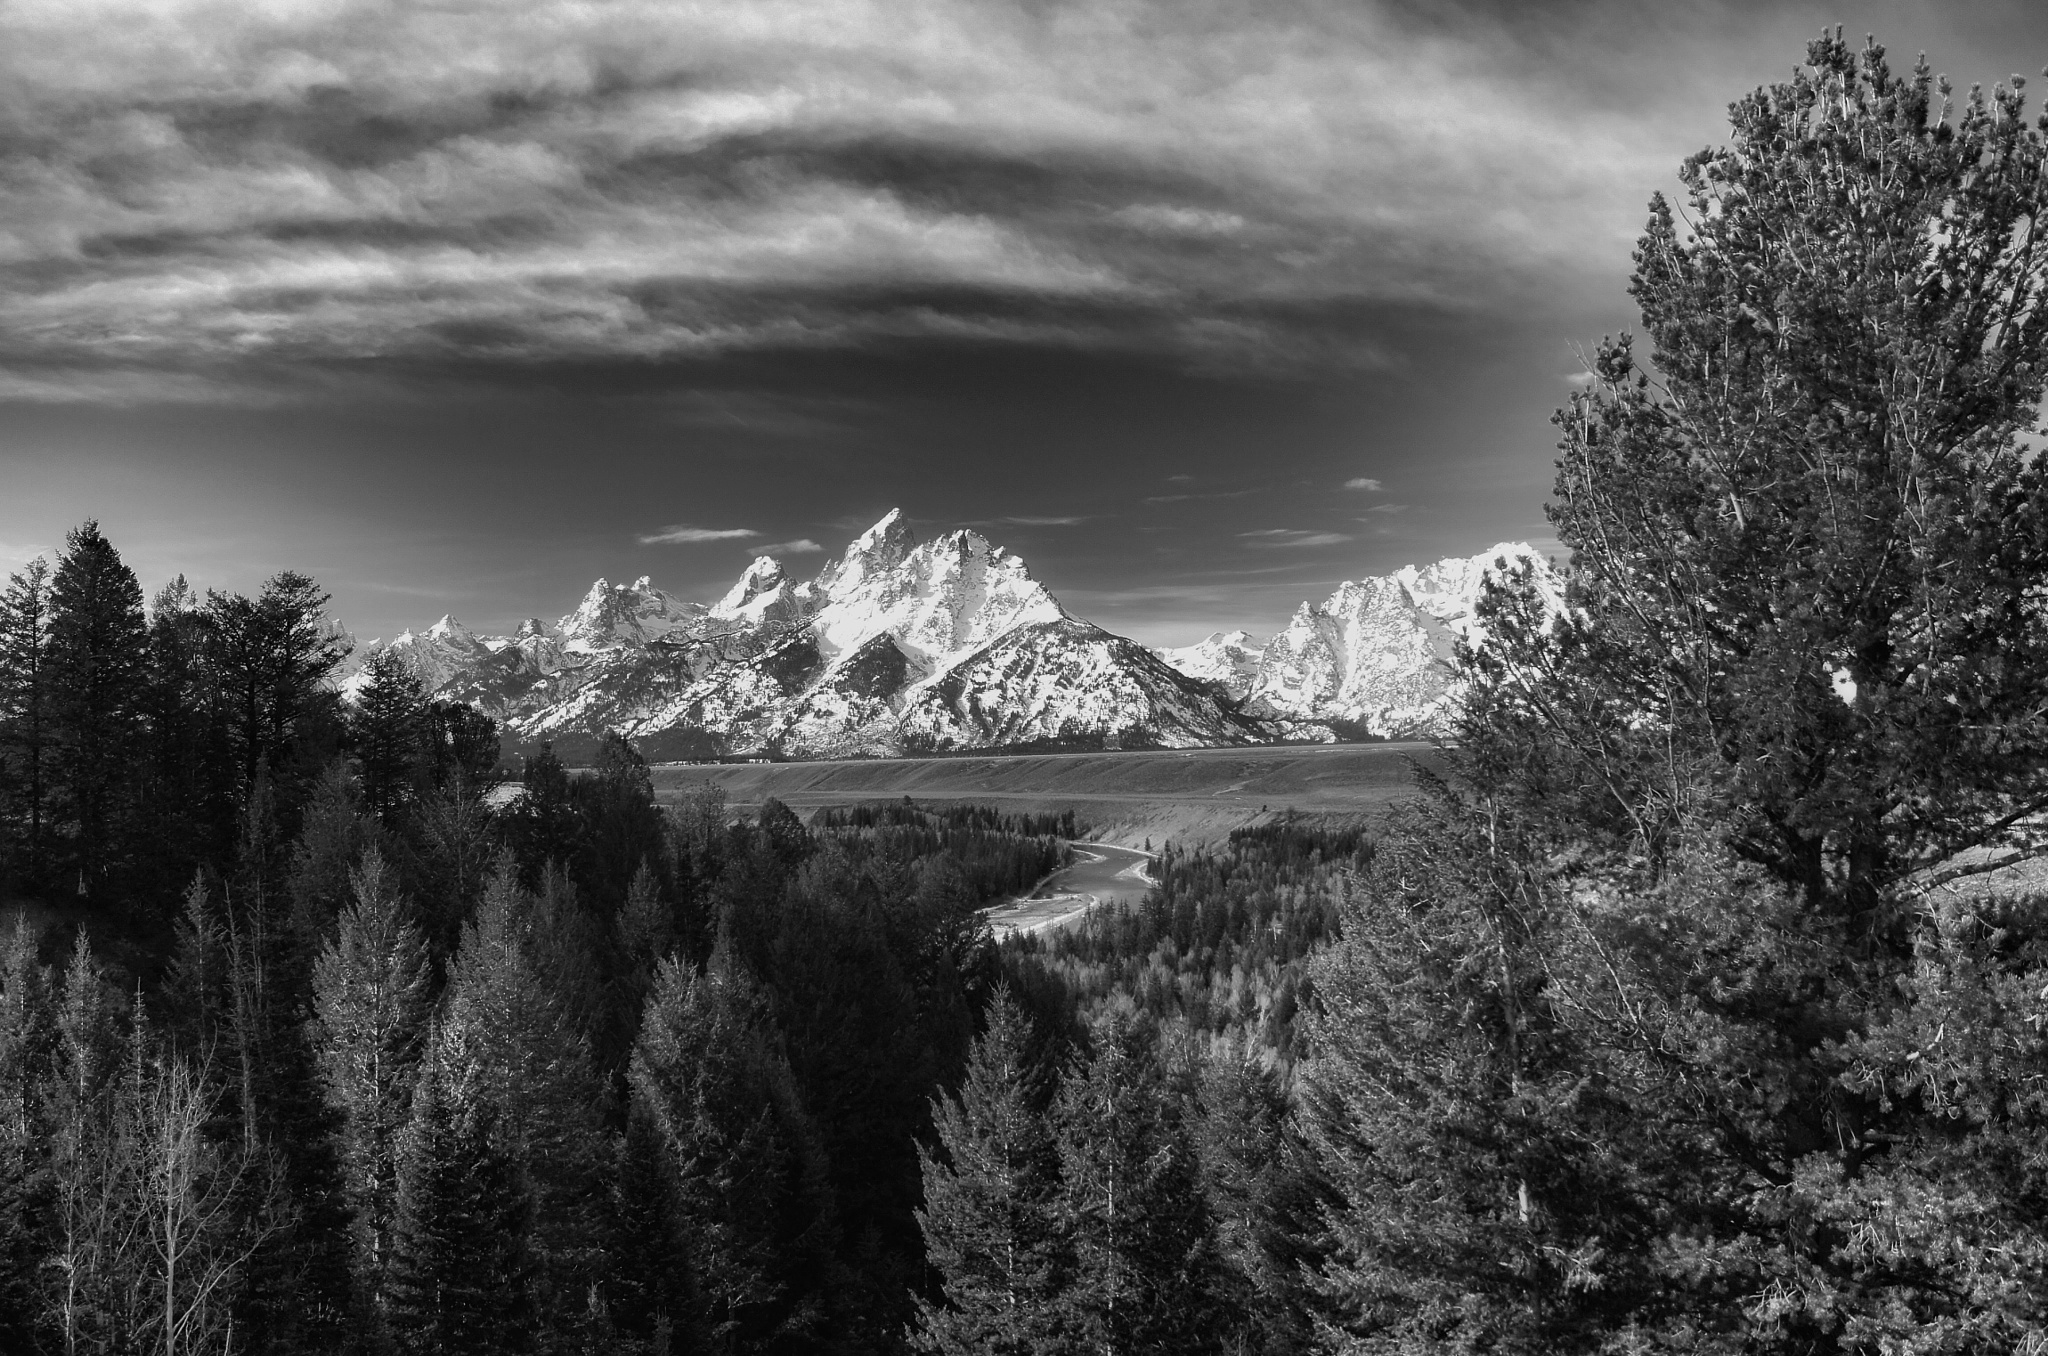 The Tetons (landscape) by Bary_B